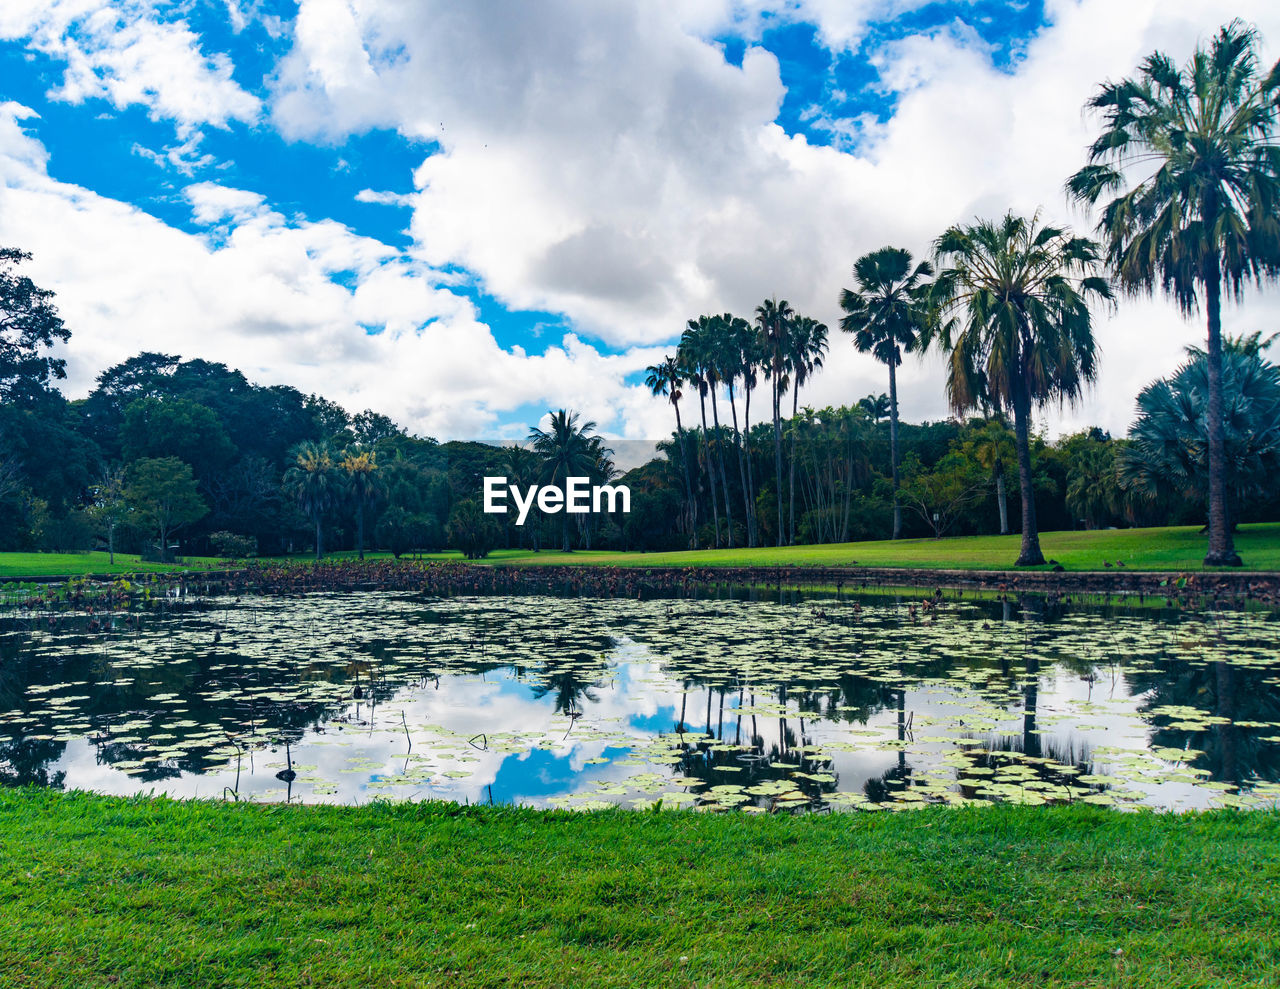 plant, water, sky, cloud - sky, tree, lake, nature, scenics - nature, tranquil scene, beauty in nature, reflection, grass, tranquility, day, palm tree, green color, growth, tropical climate, no people, outdoors, floating on water